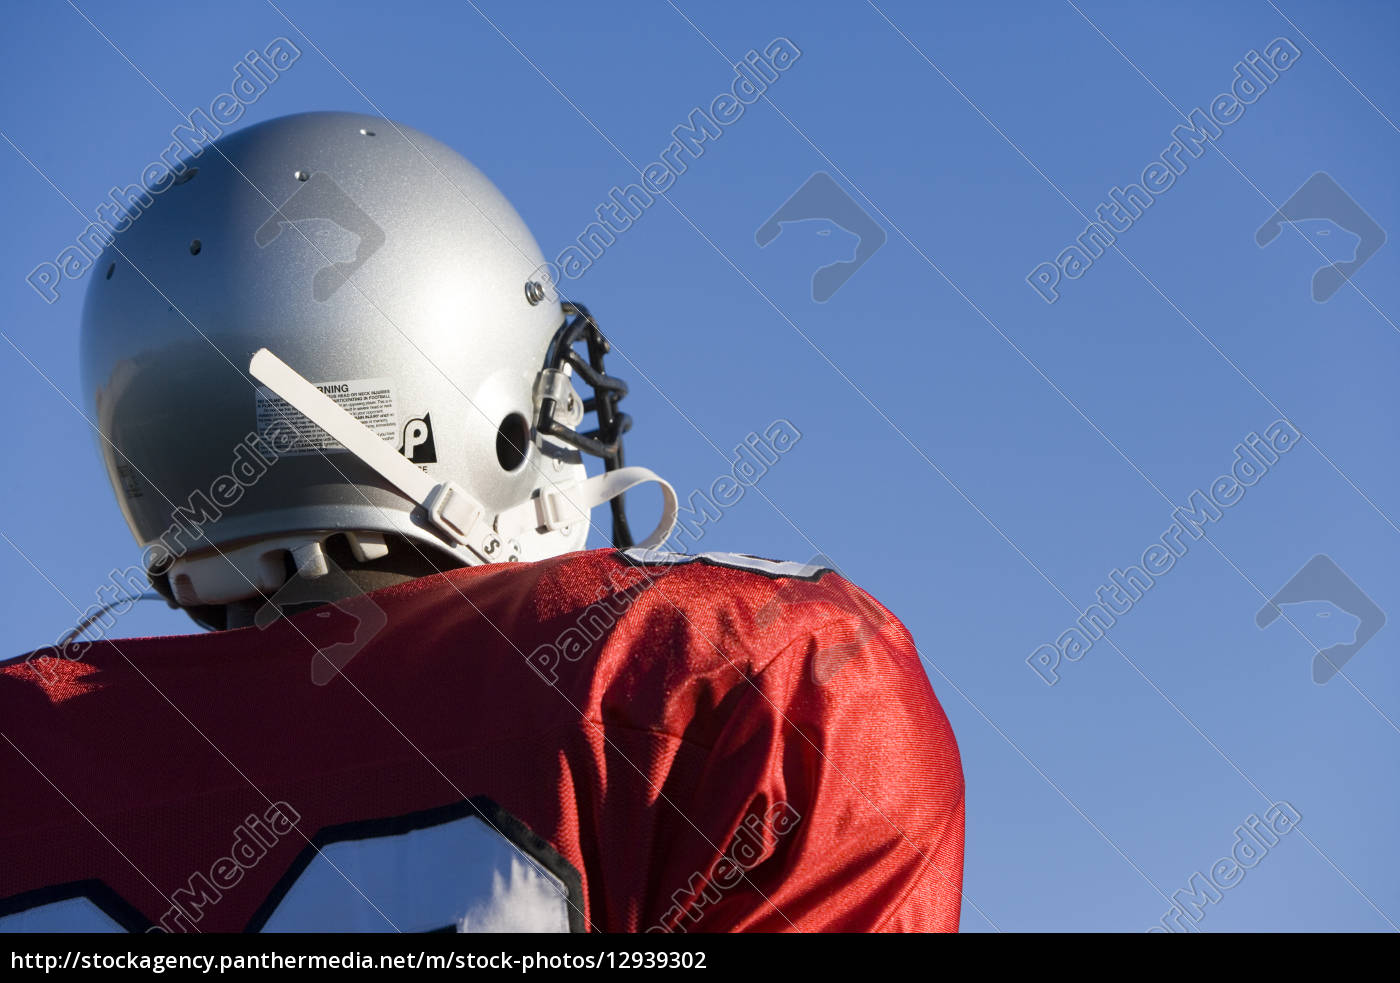 american, football, player, wearing, red, football - 12939302